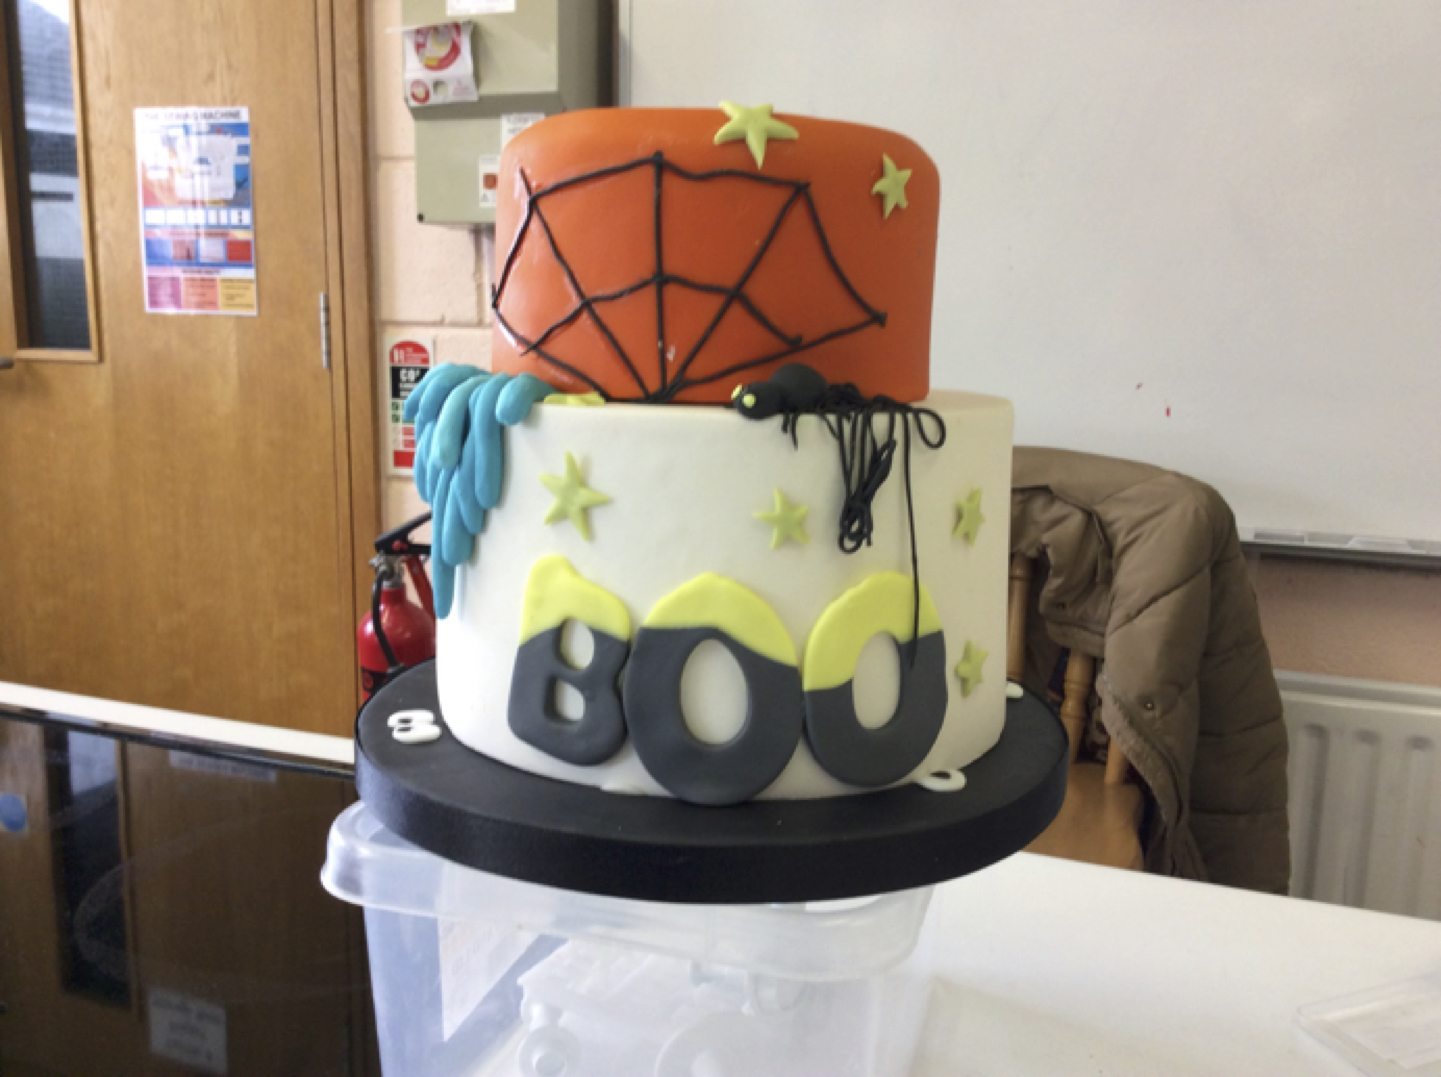 May 2017: The completed cake by the 2nd year home economics class